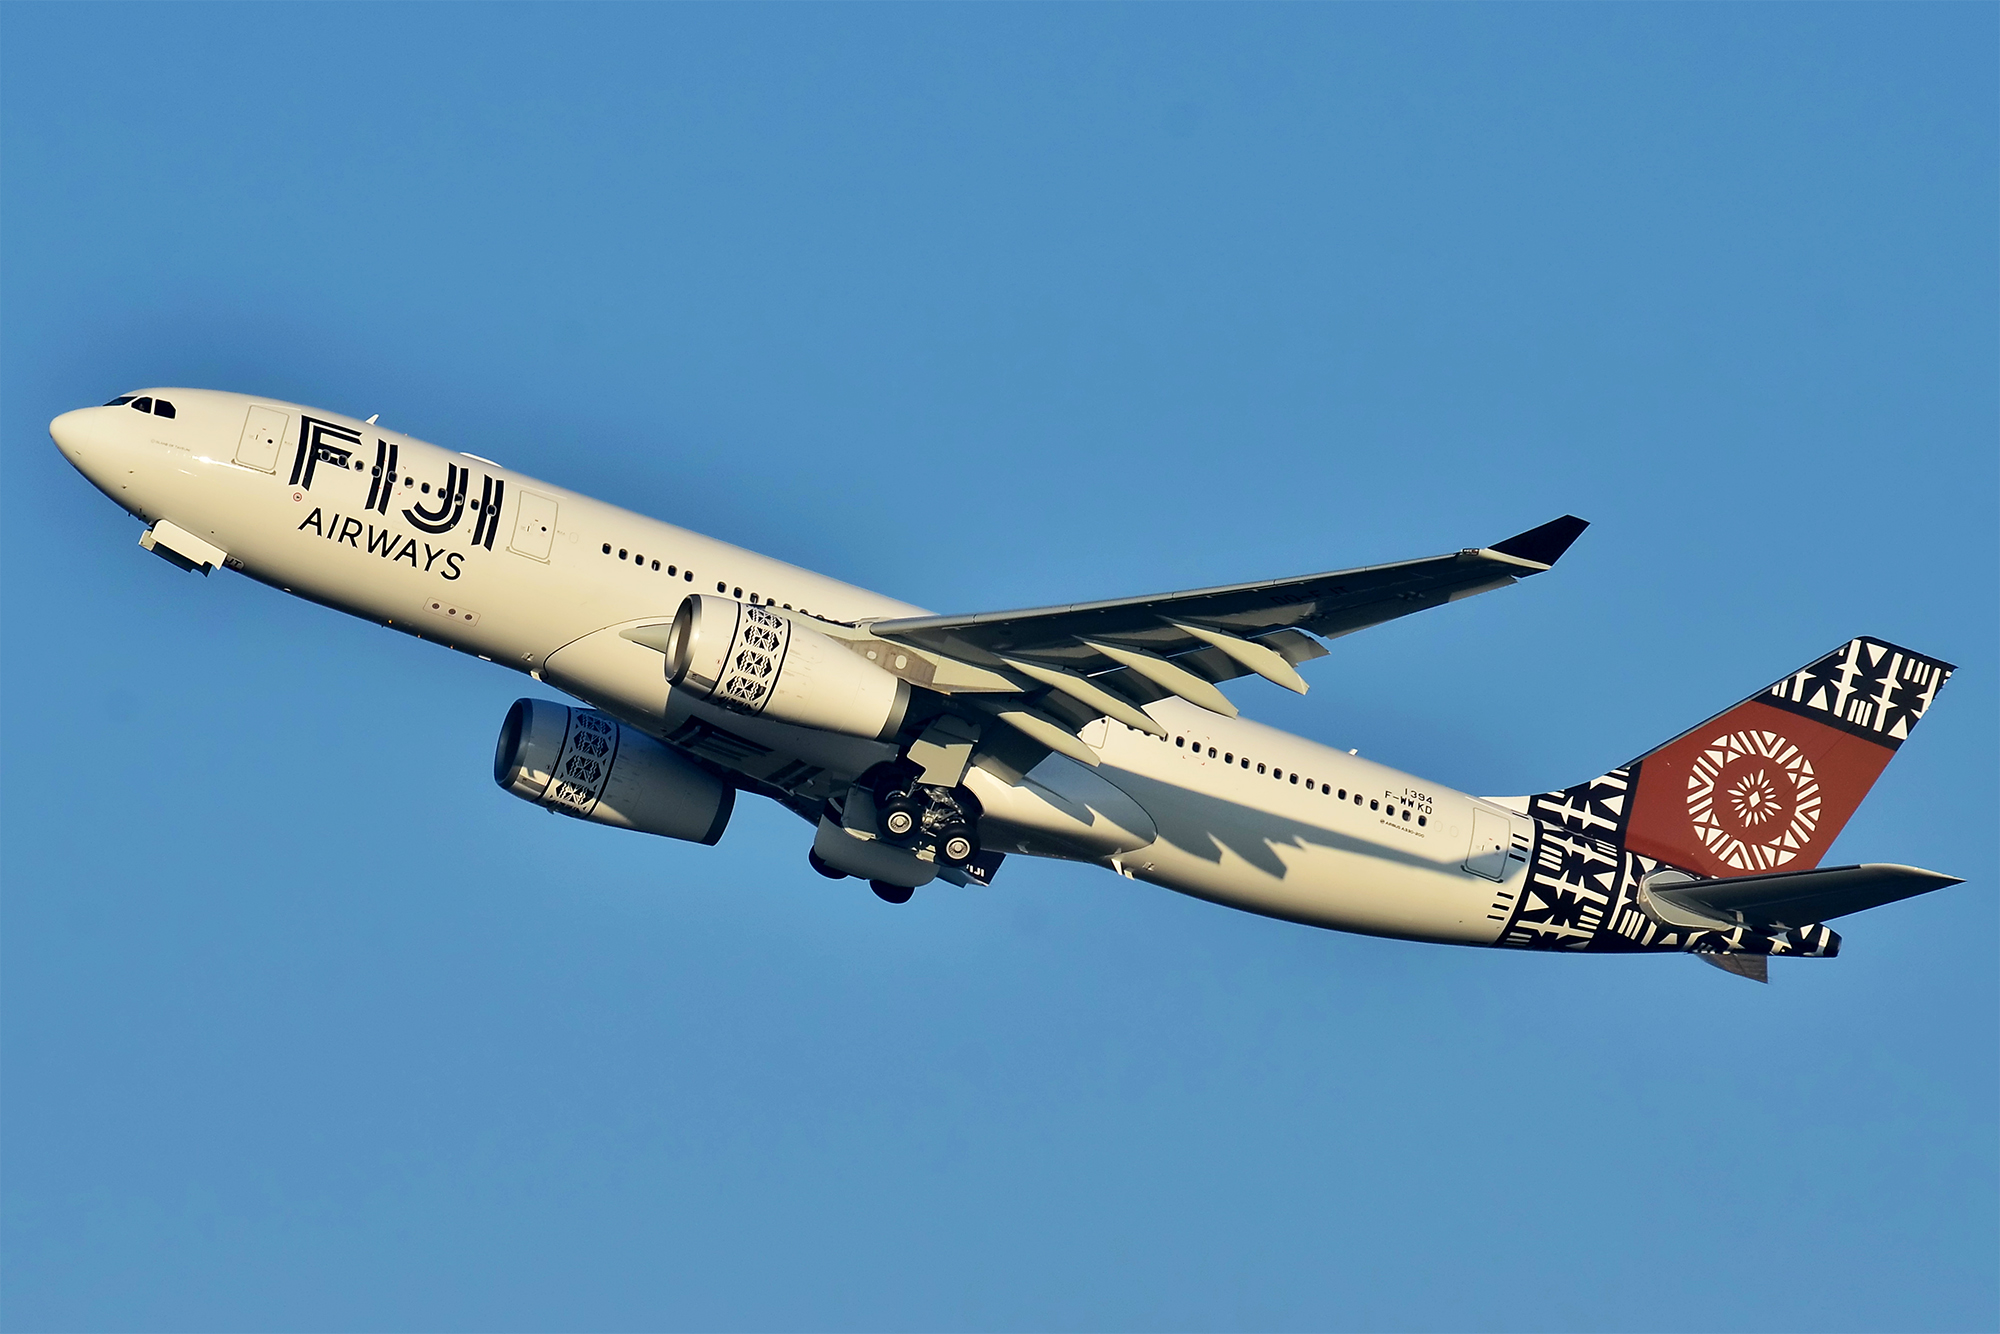 Fiji Airways A330 (Laurent Errera).jpg